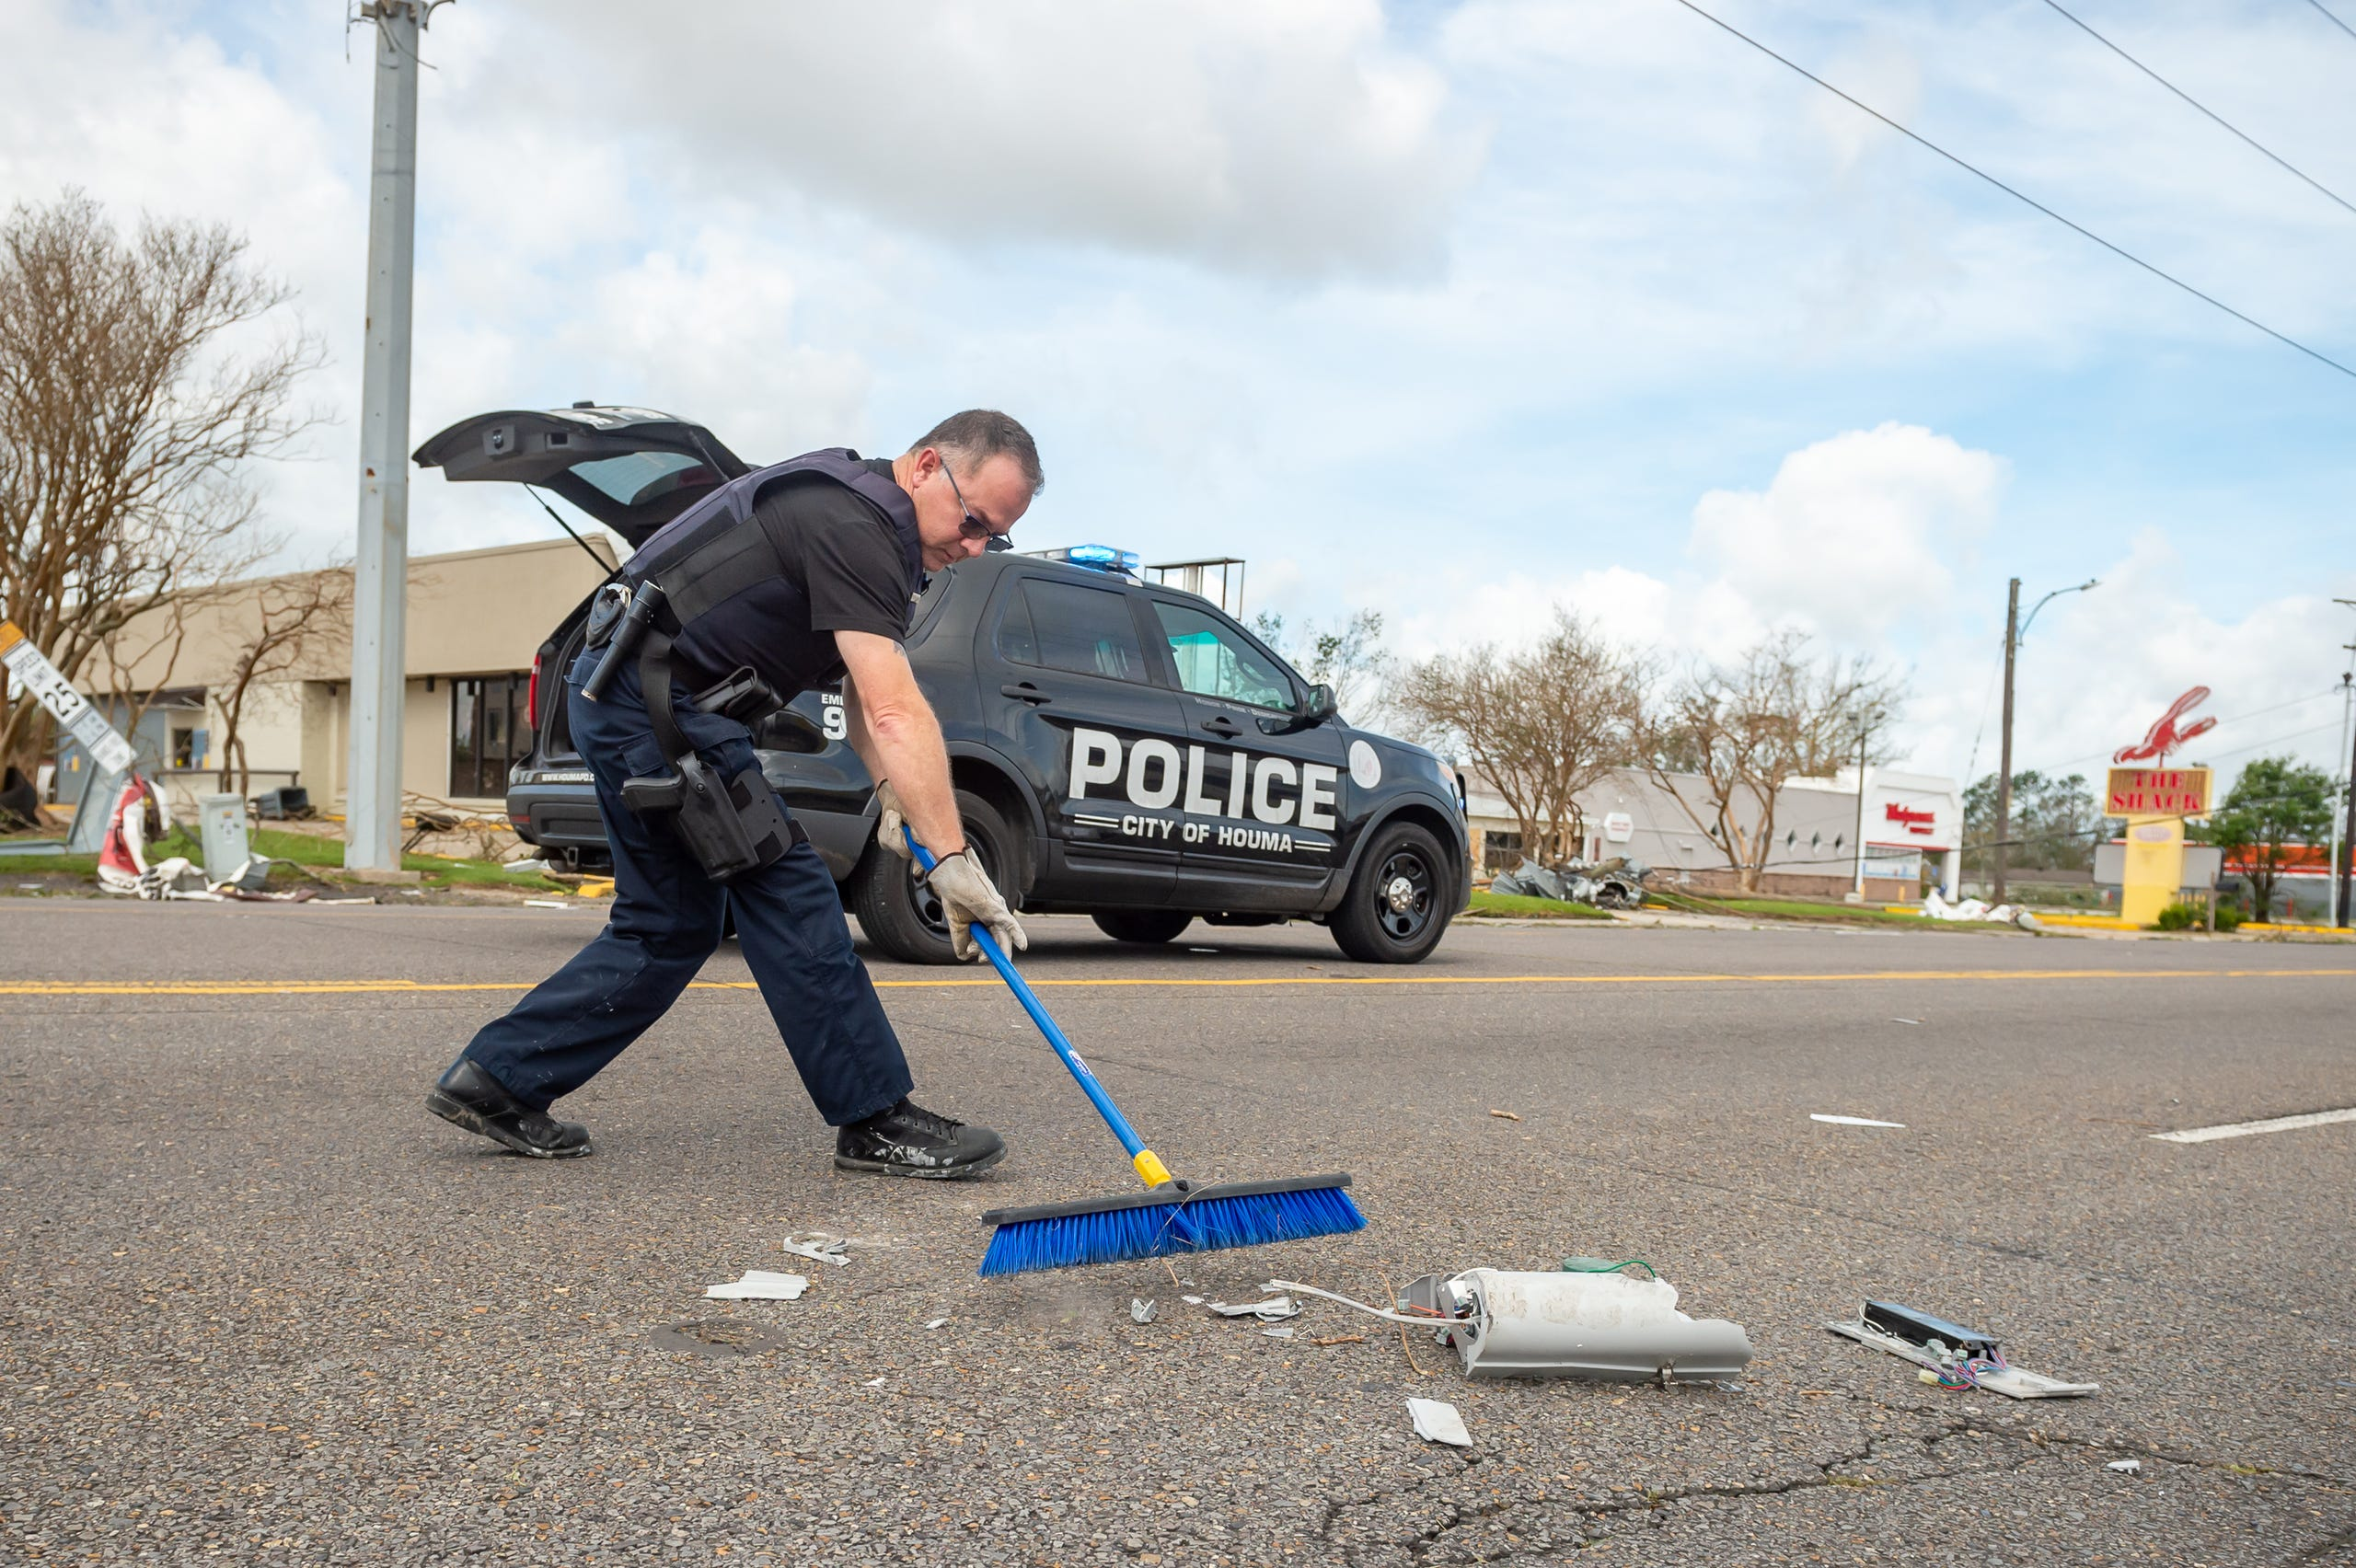 Officer Walter Tenney clearing debris from roadway after Hurricane Ida in Houma, LA. Monday, Aug. 30, 2021.